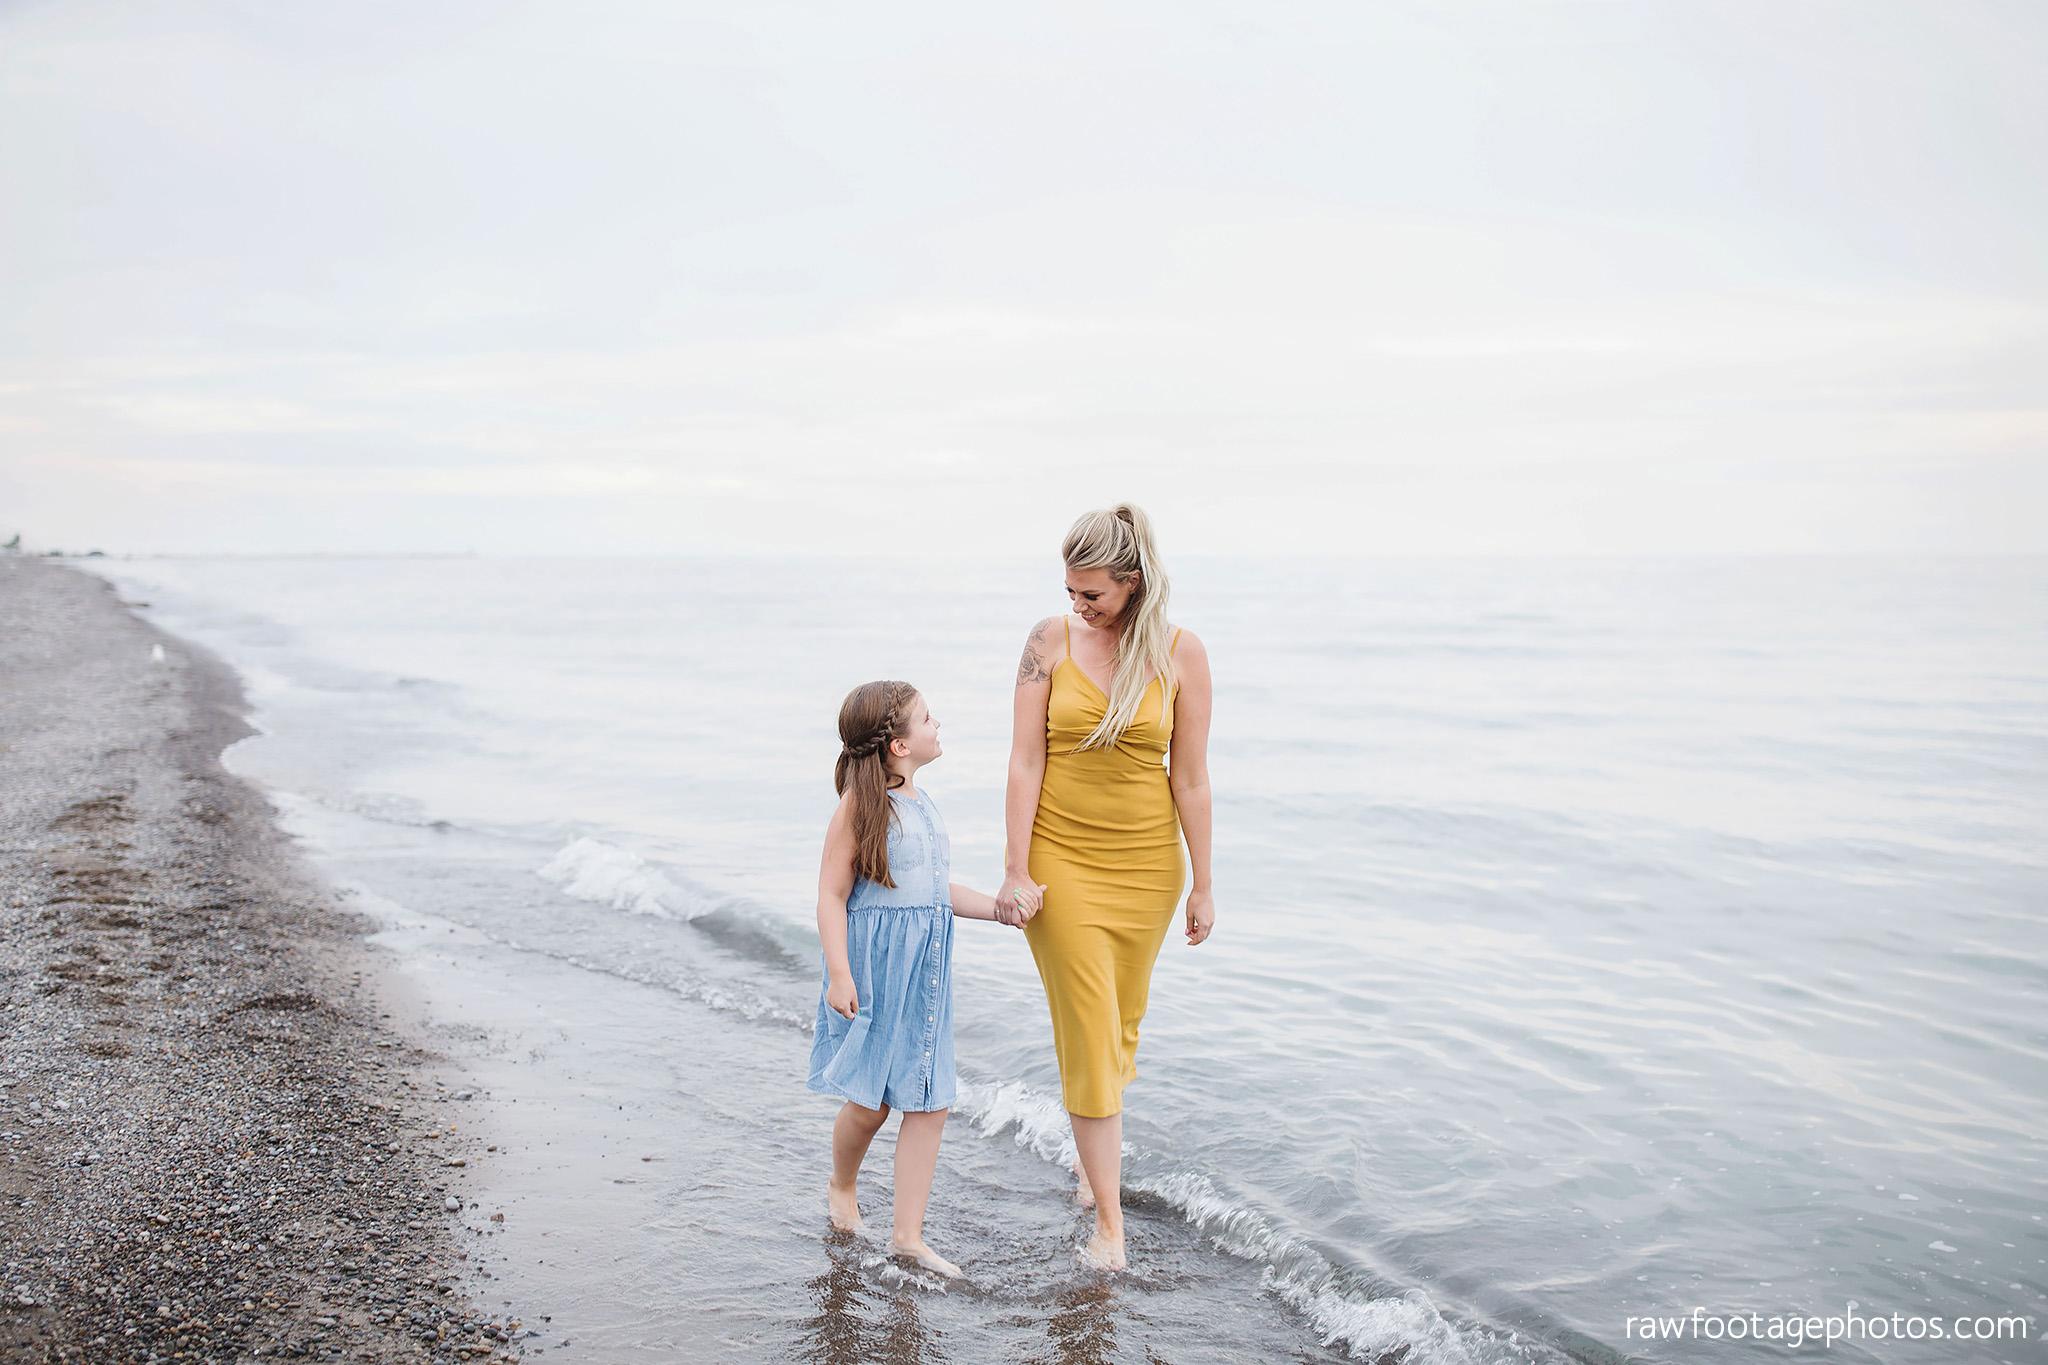 london_ontario_family_photographer-beach_minis-port_stanley_beach-raw_footage_photography039.jpg